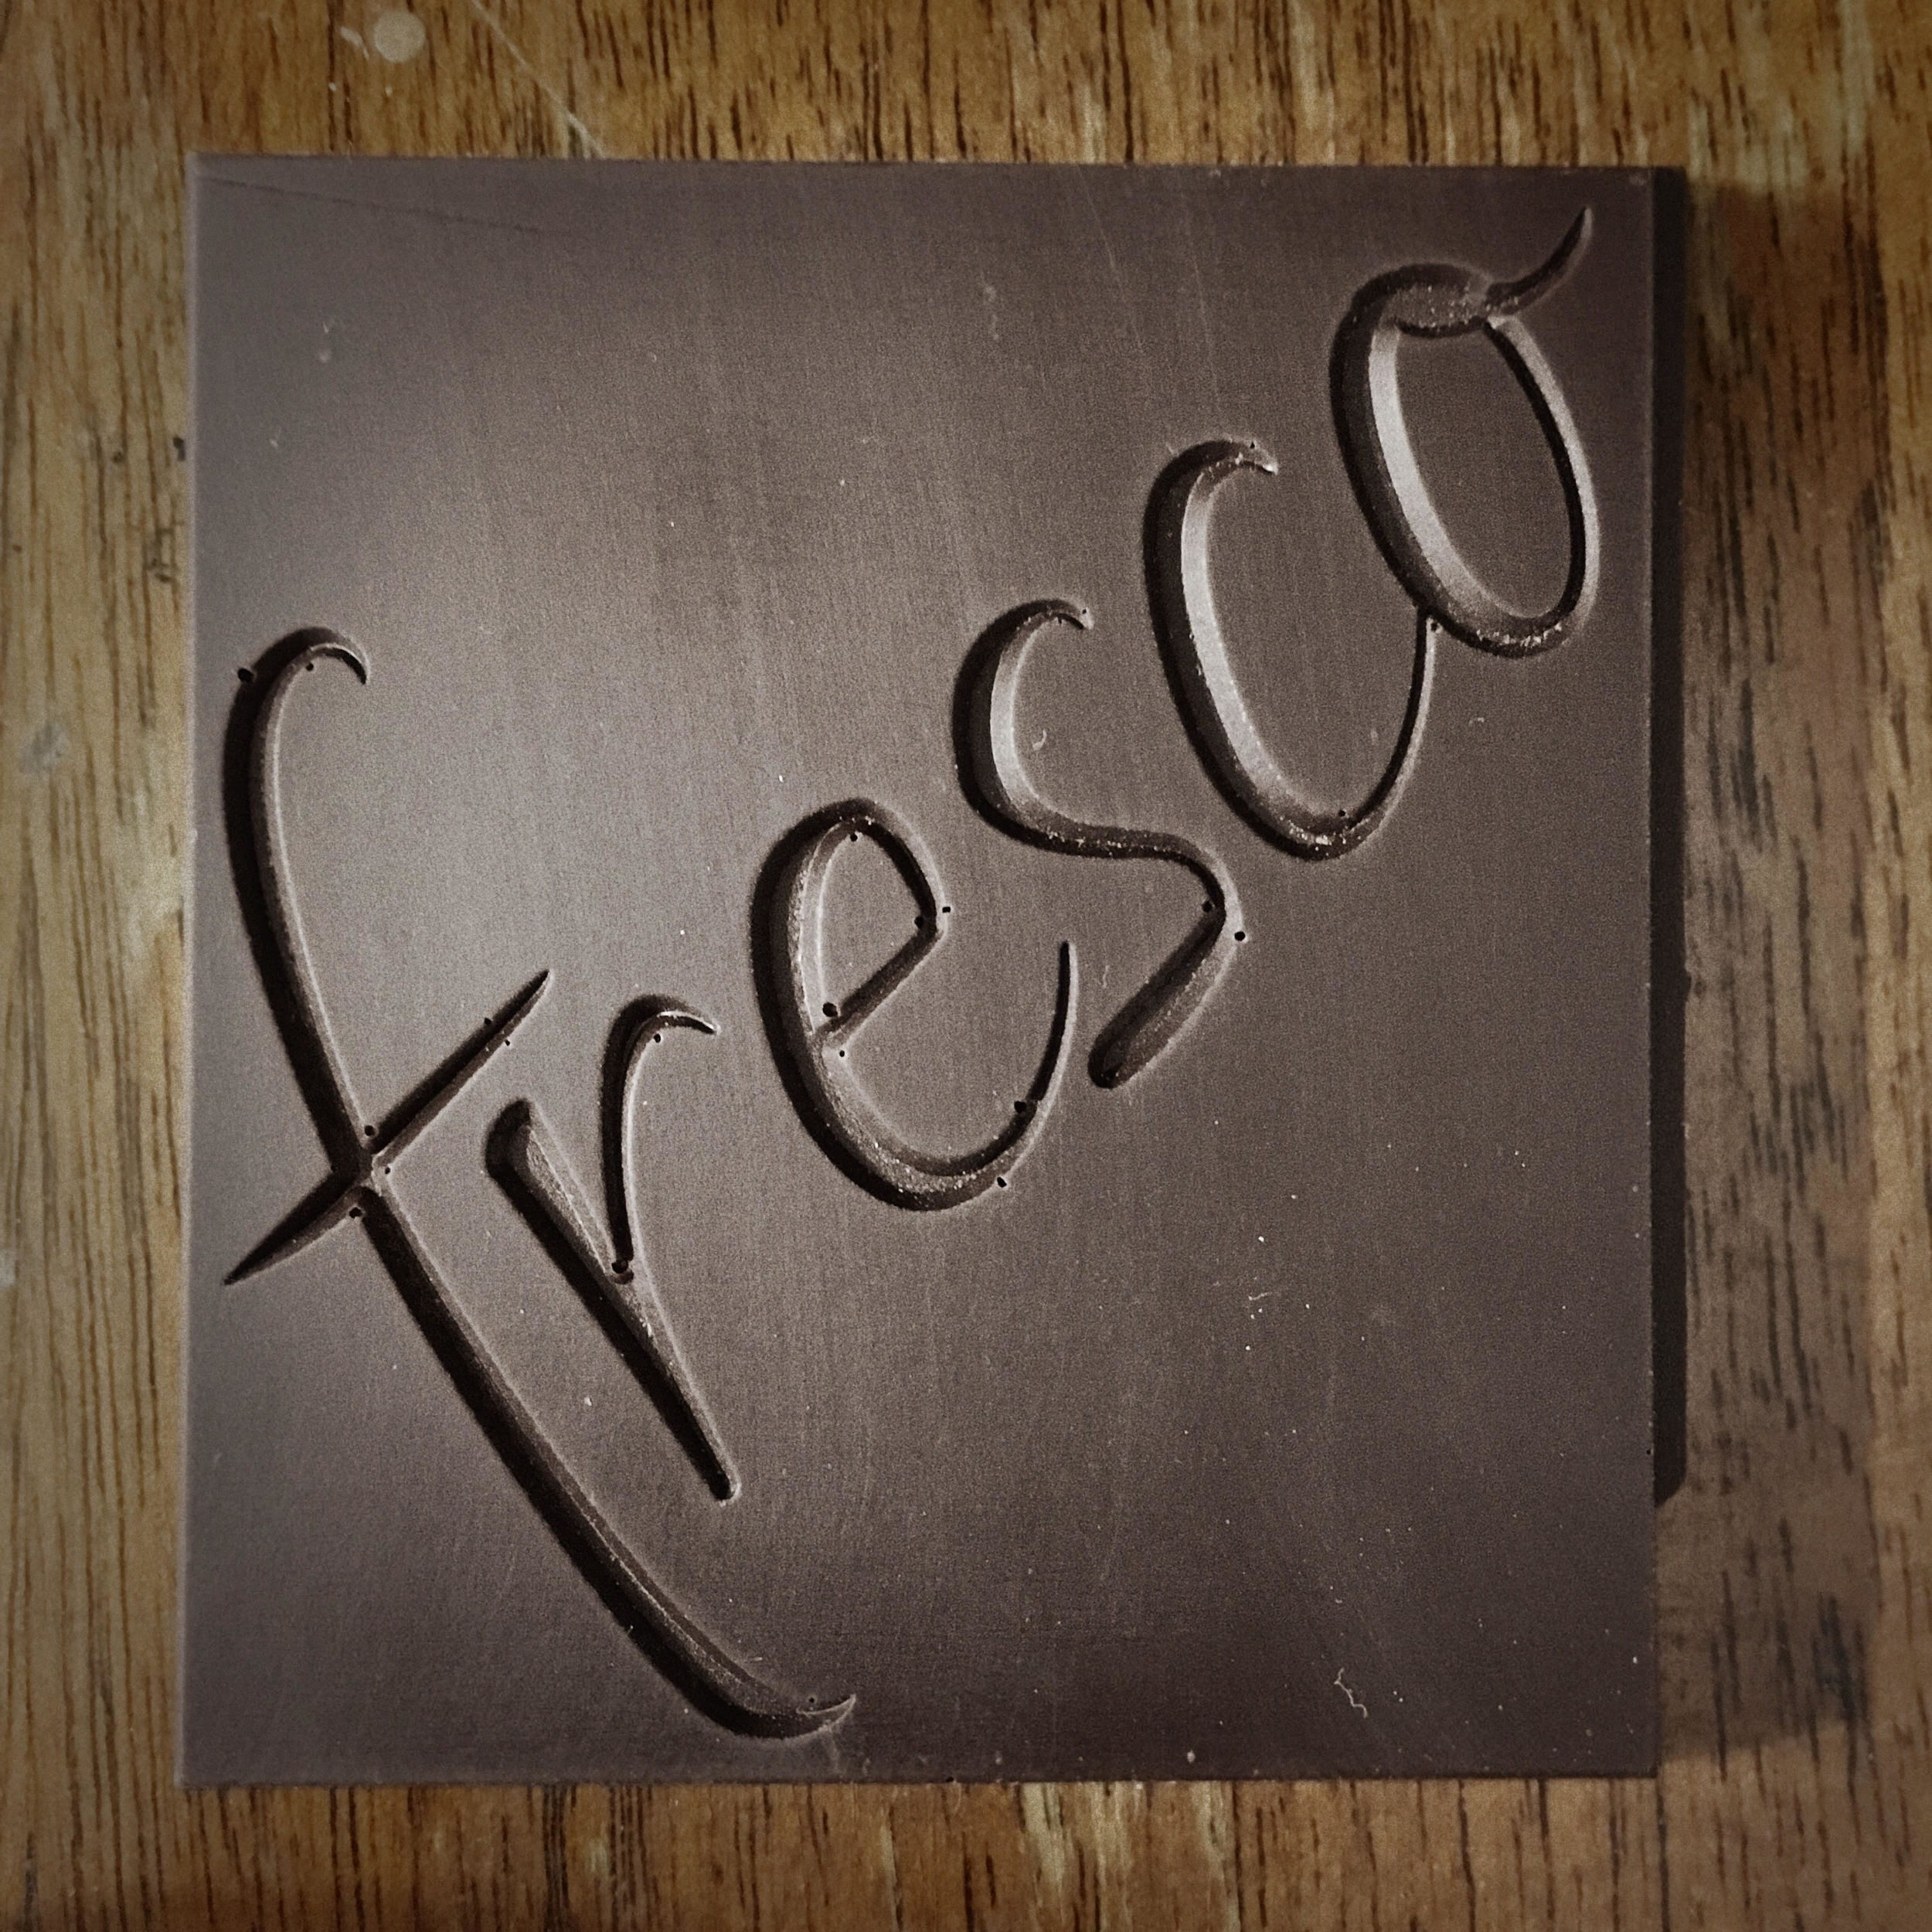 Fresco Oko Caribe 100% bar.jpg